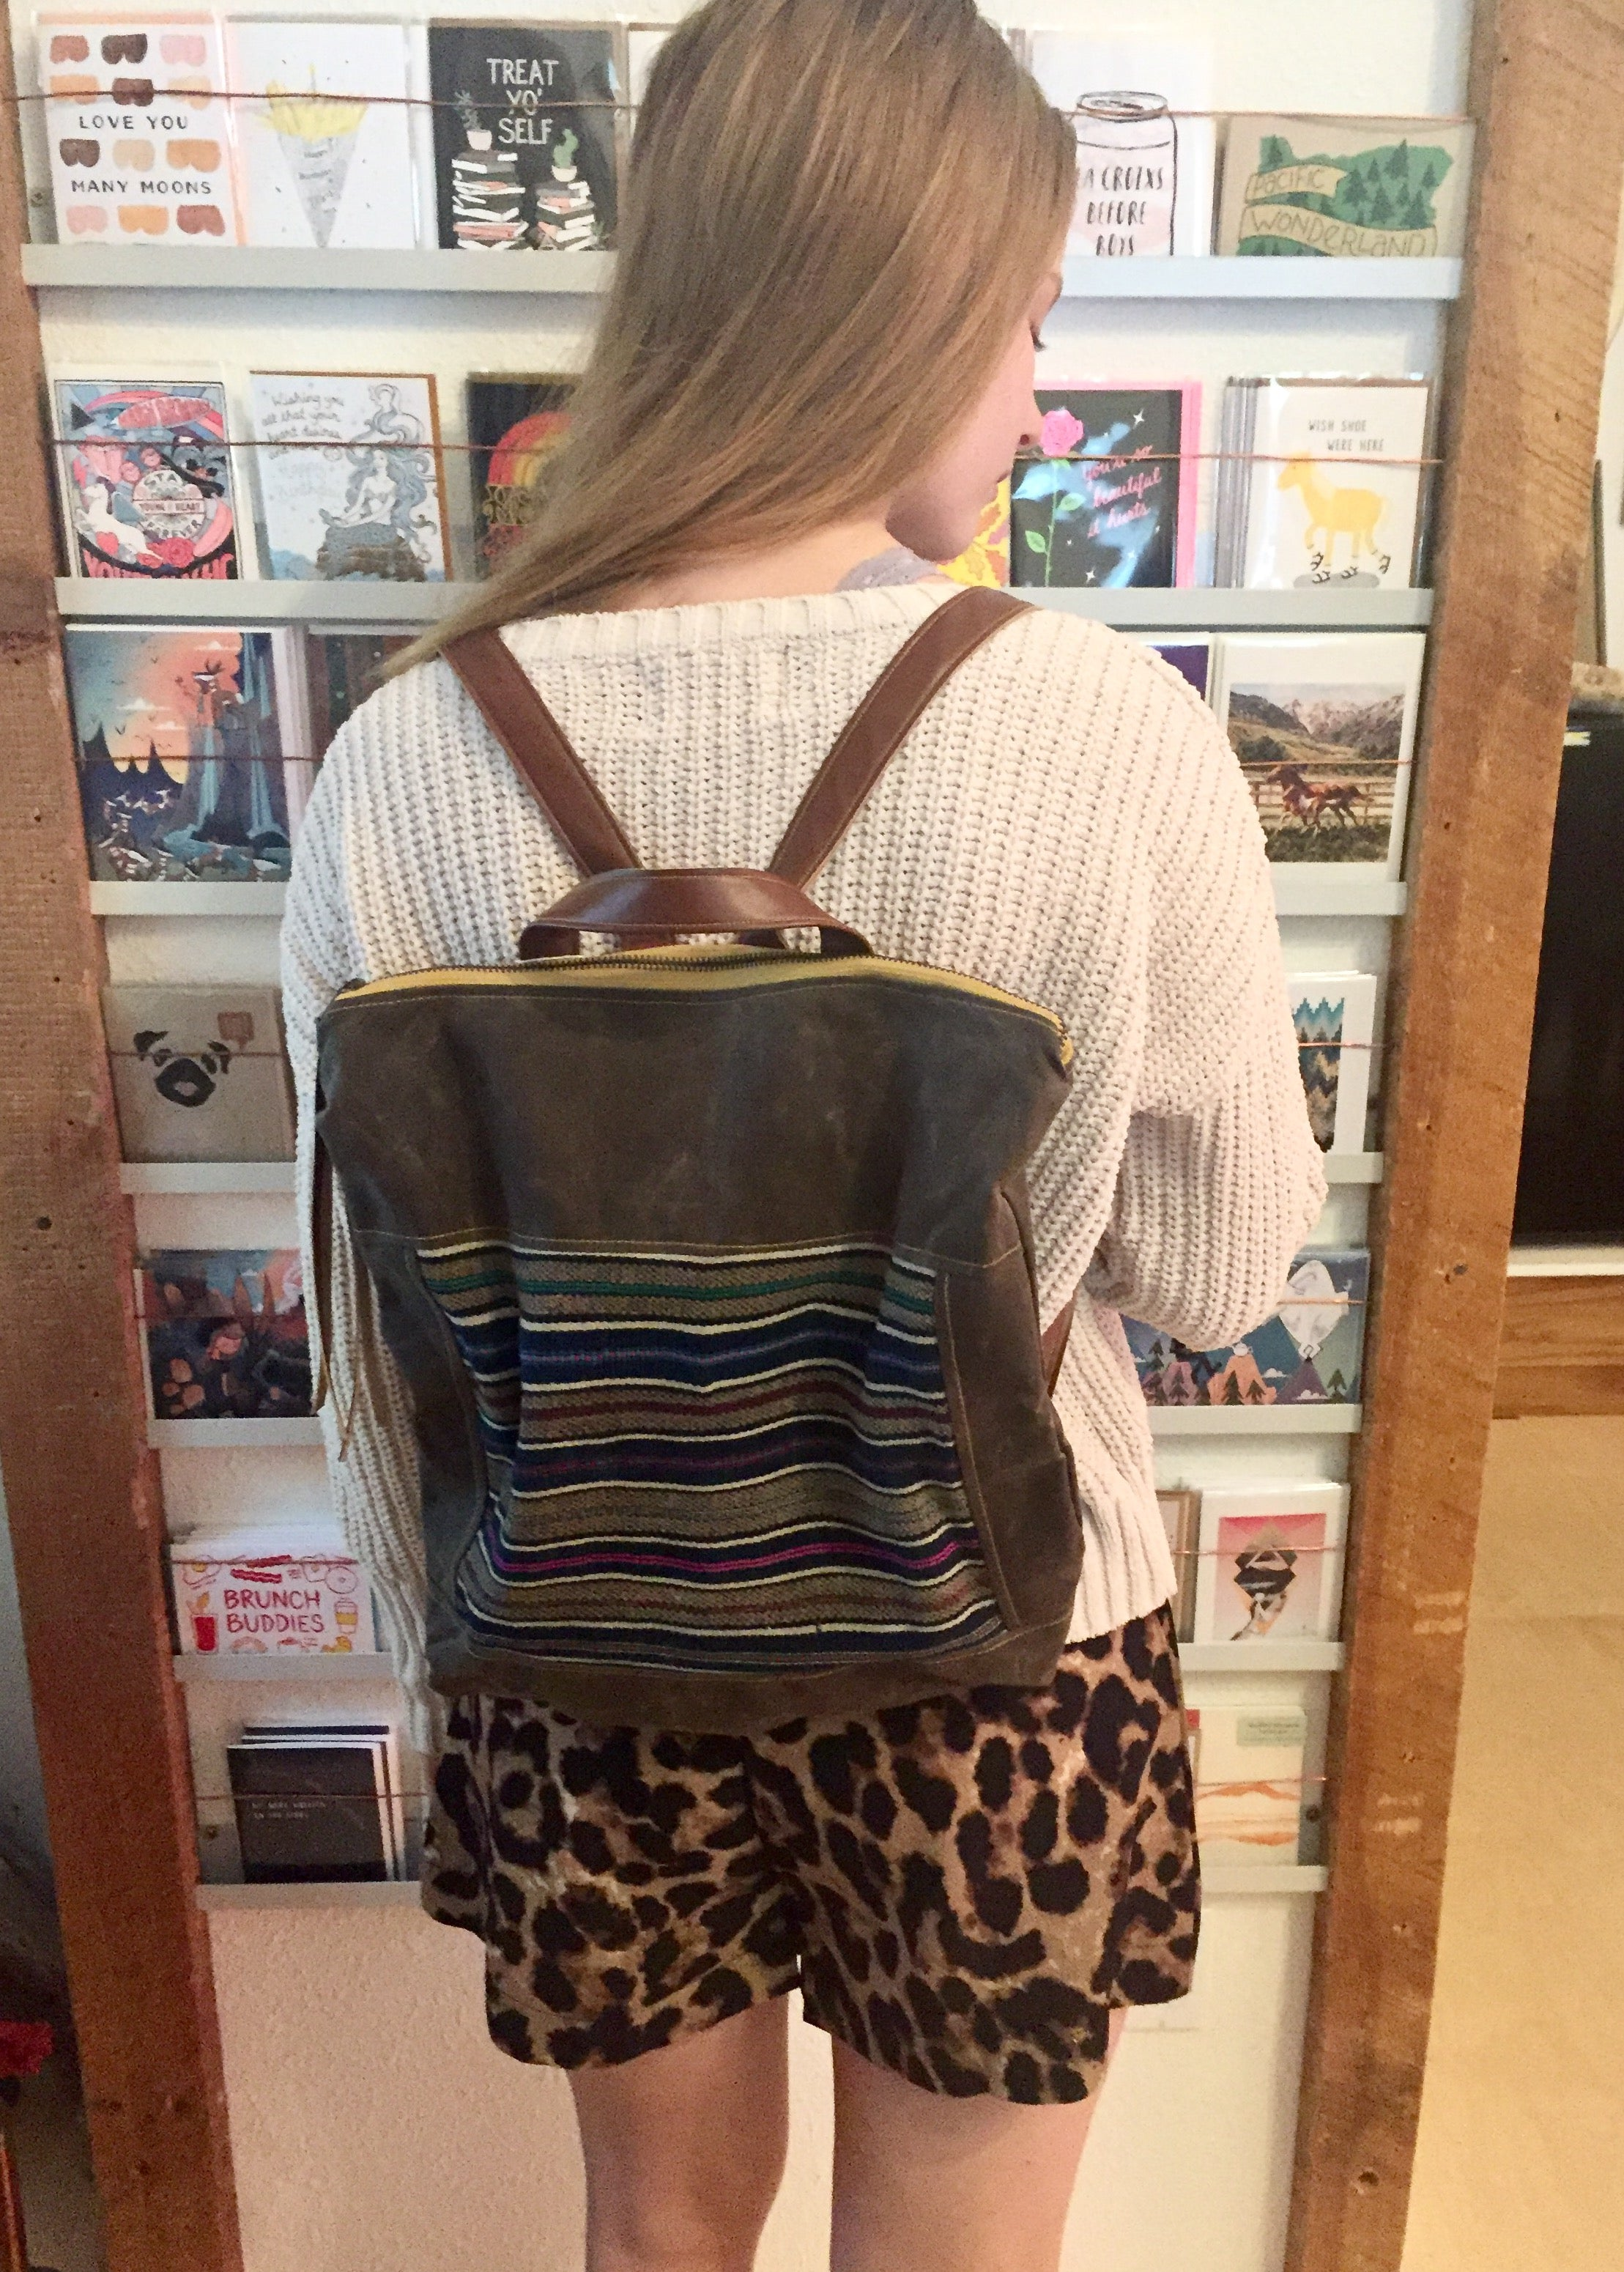 Rachel Elise Waxed Canvas Backpack